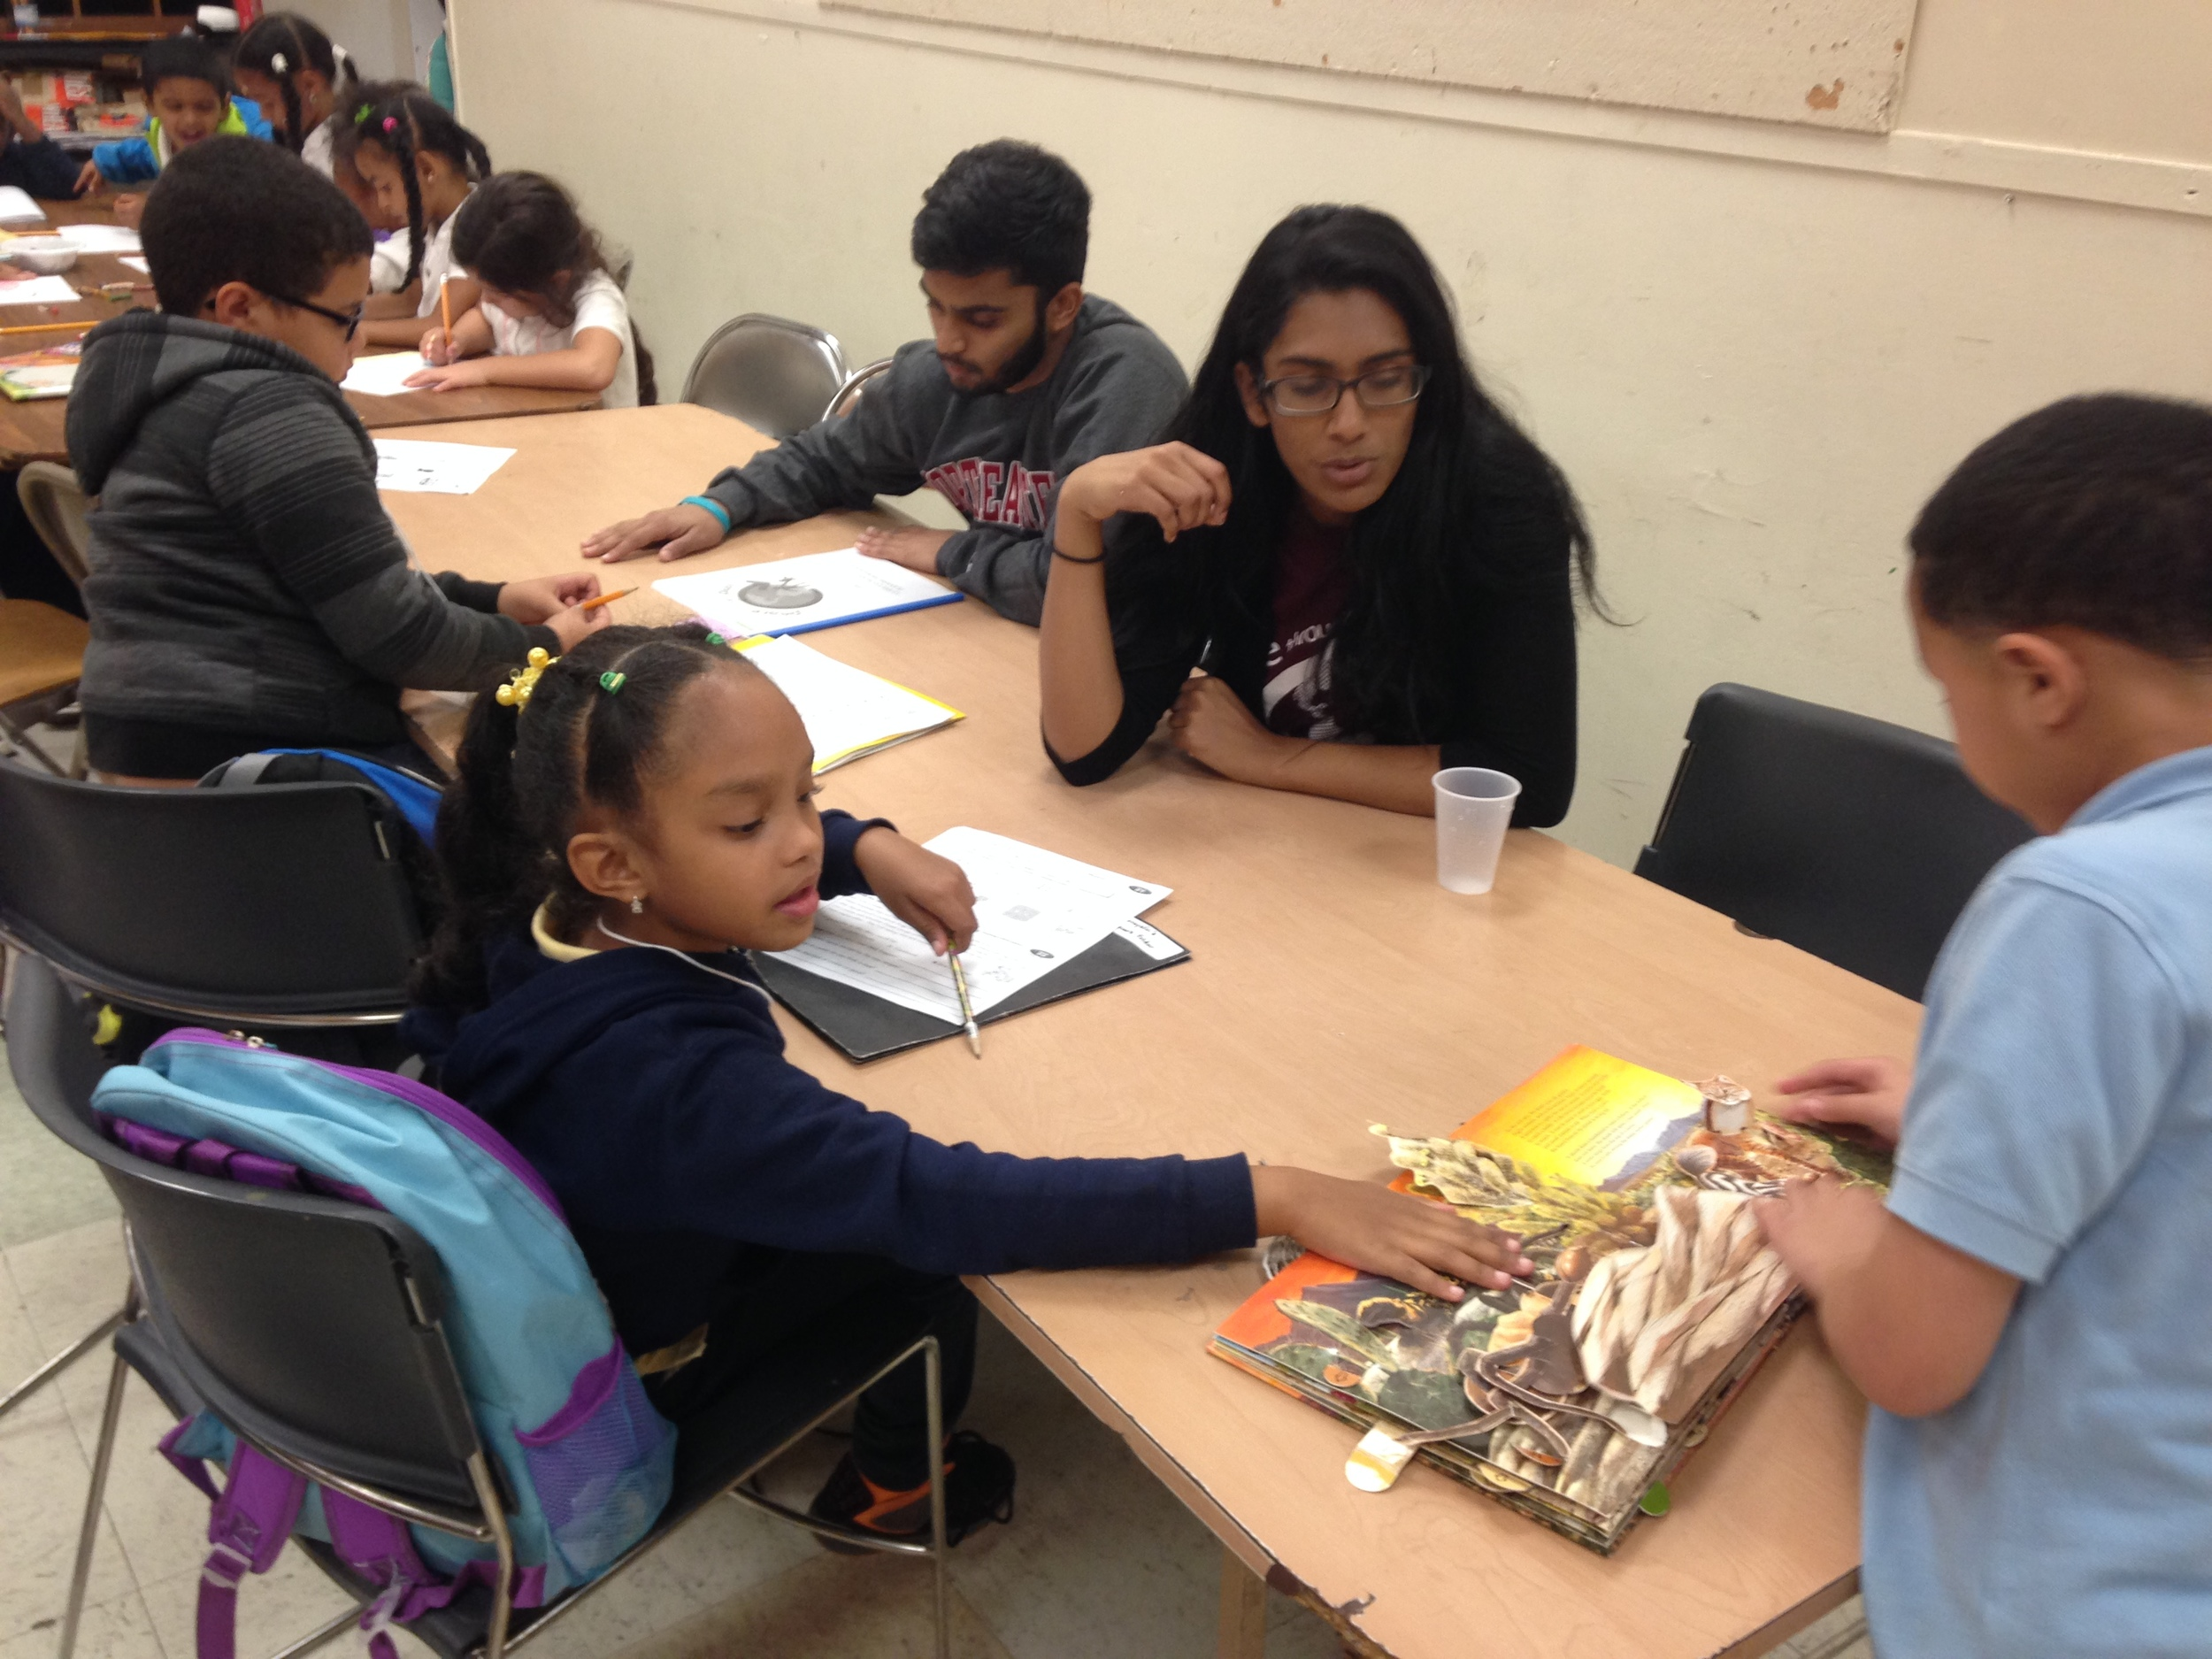 Peace through play volunteers work with b-ready students on positive conflict resolution